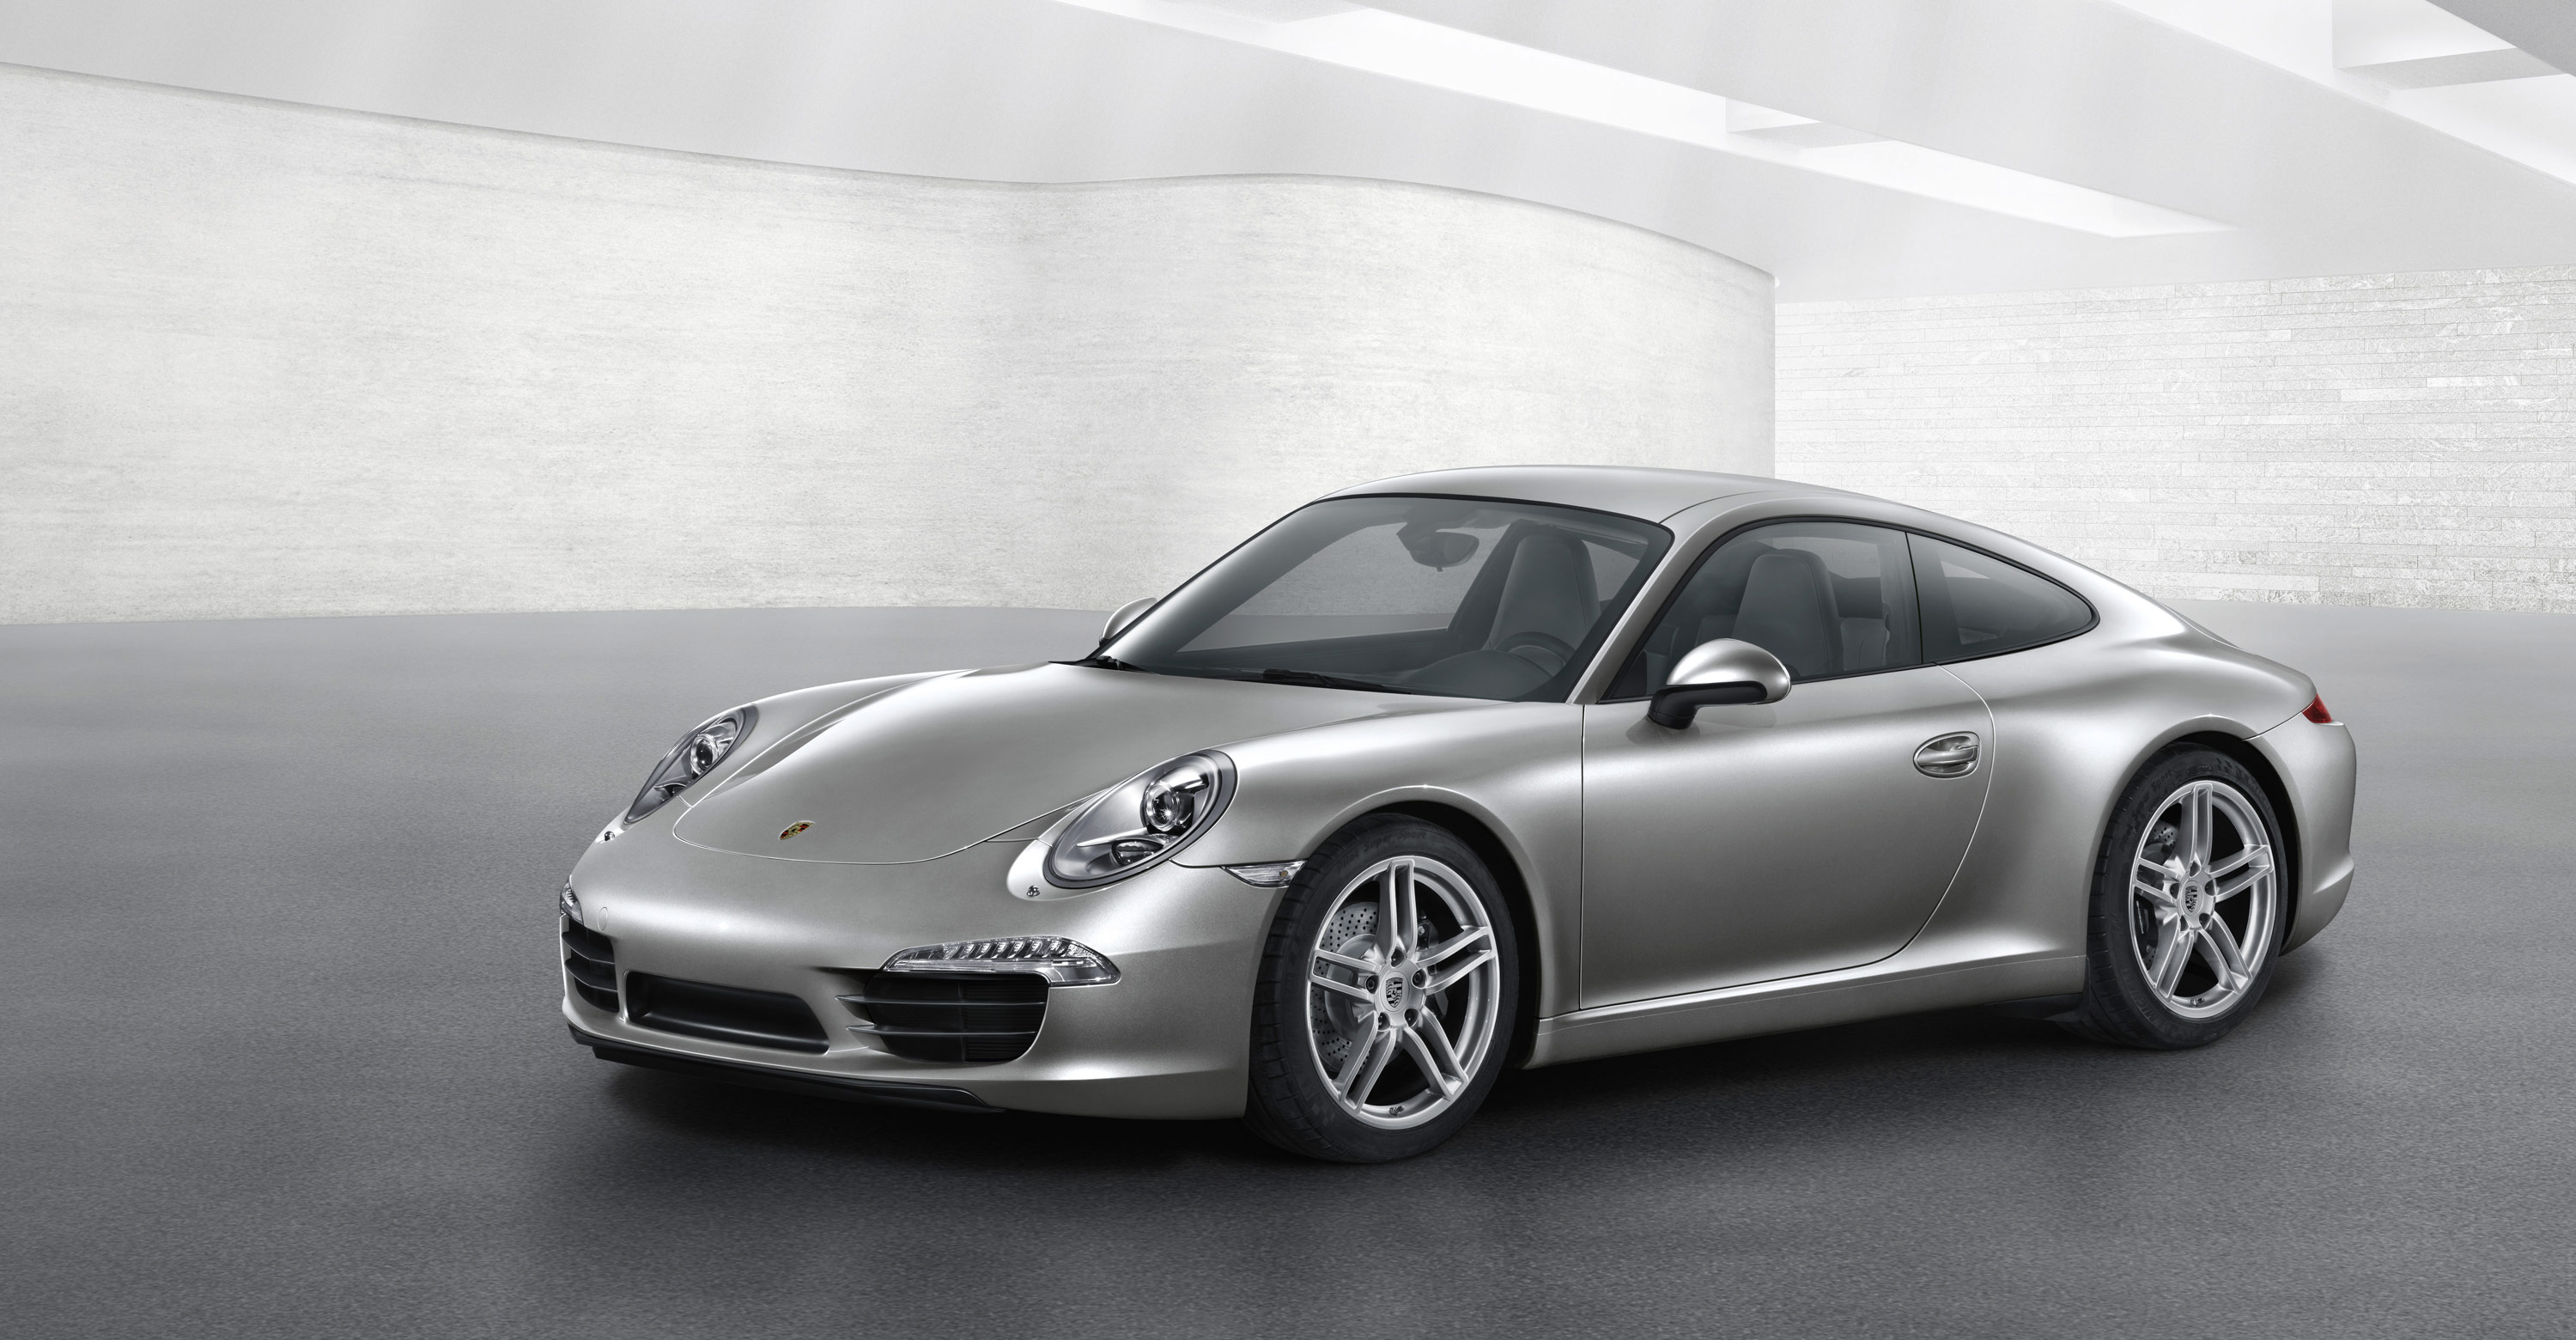 2012 silver porsche 911 carrera wallpapers. Black Bedroom Furniture Sets. Home Design Ideas